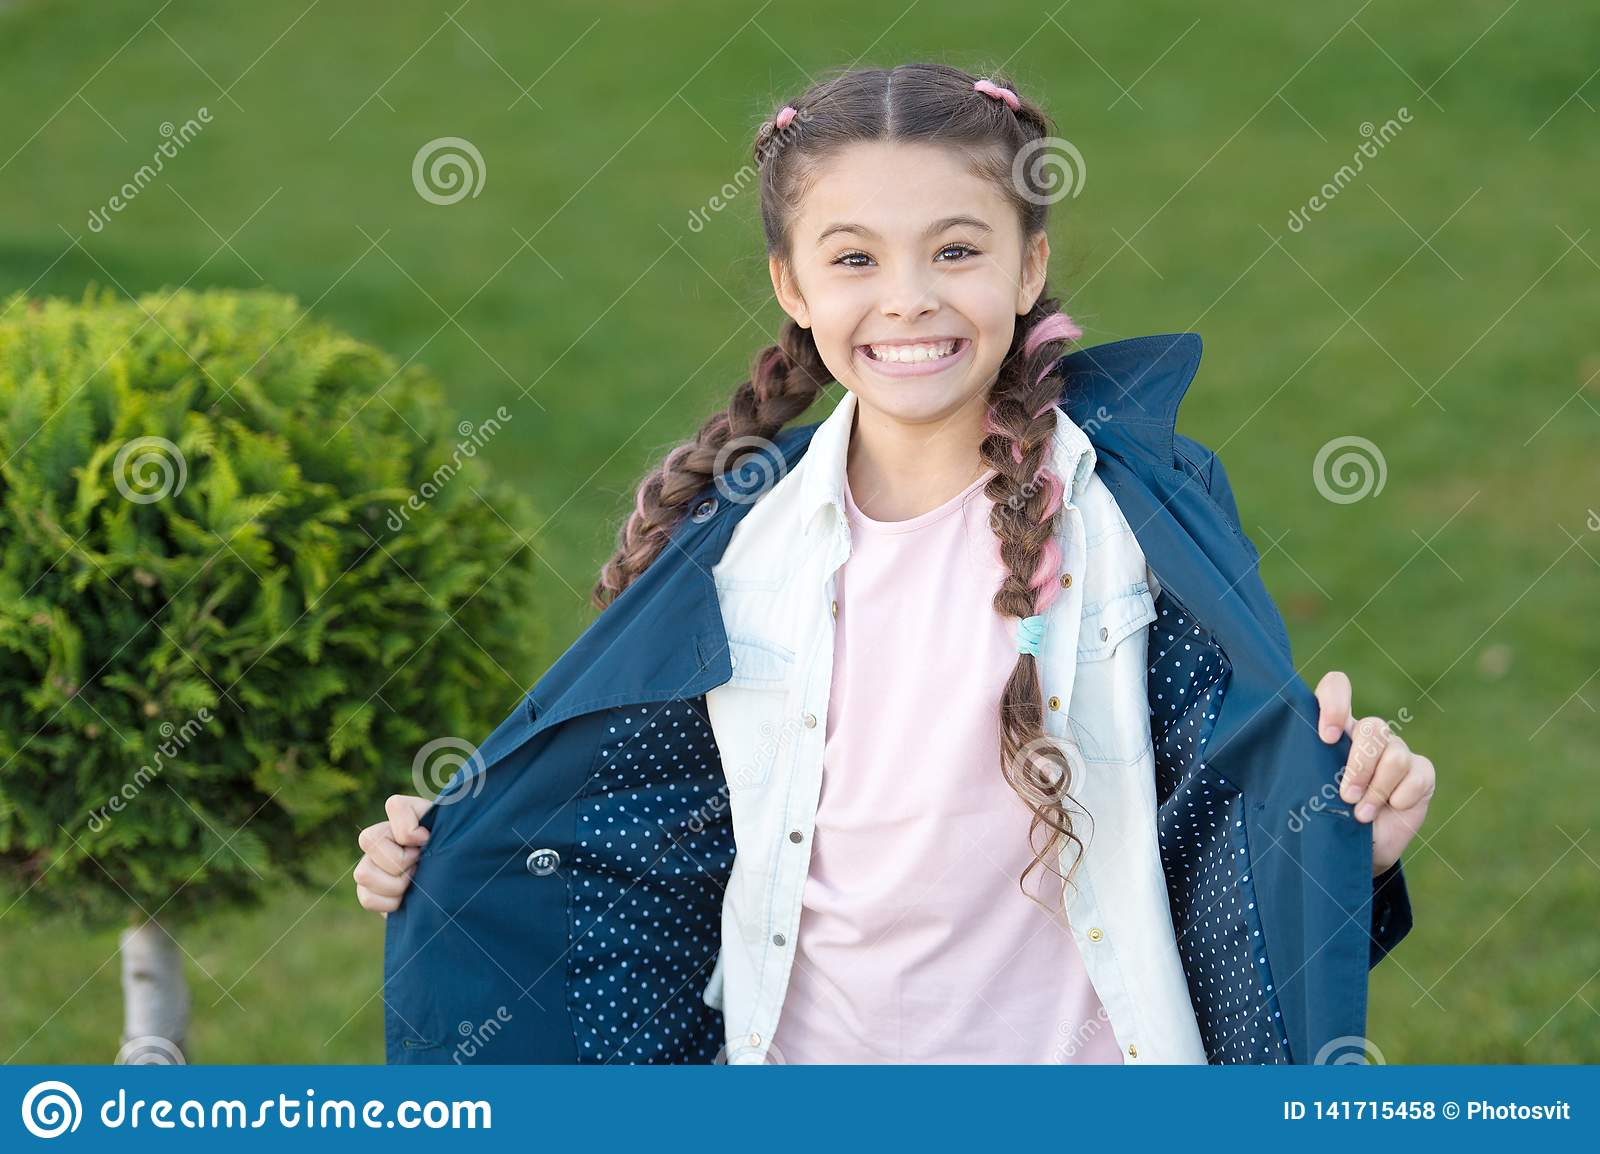 Good mood. Autumn weather. Cypress tree. Happy child with thuja. Positive kid. Little girl with trendy hairstyle. Spring